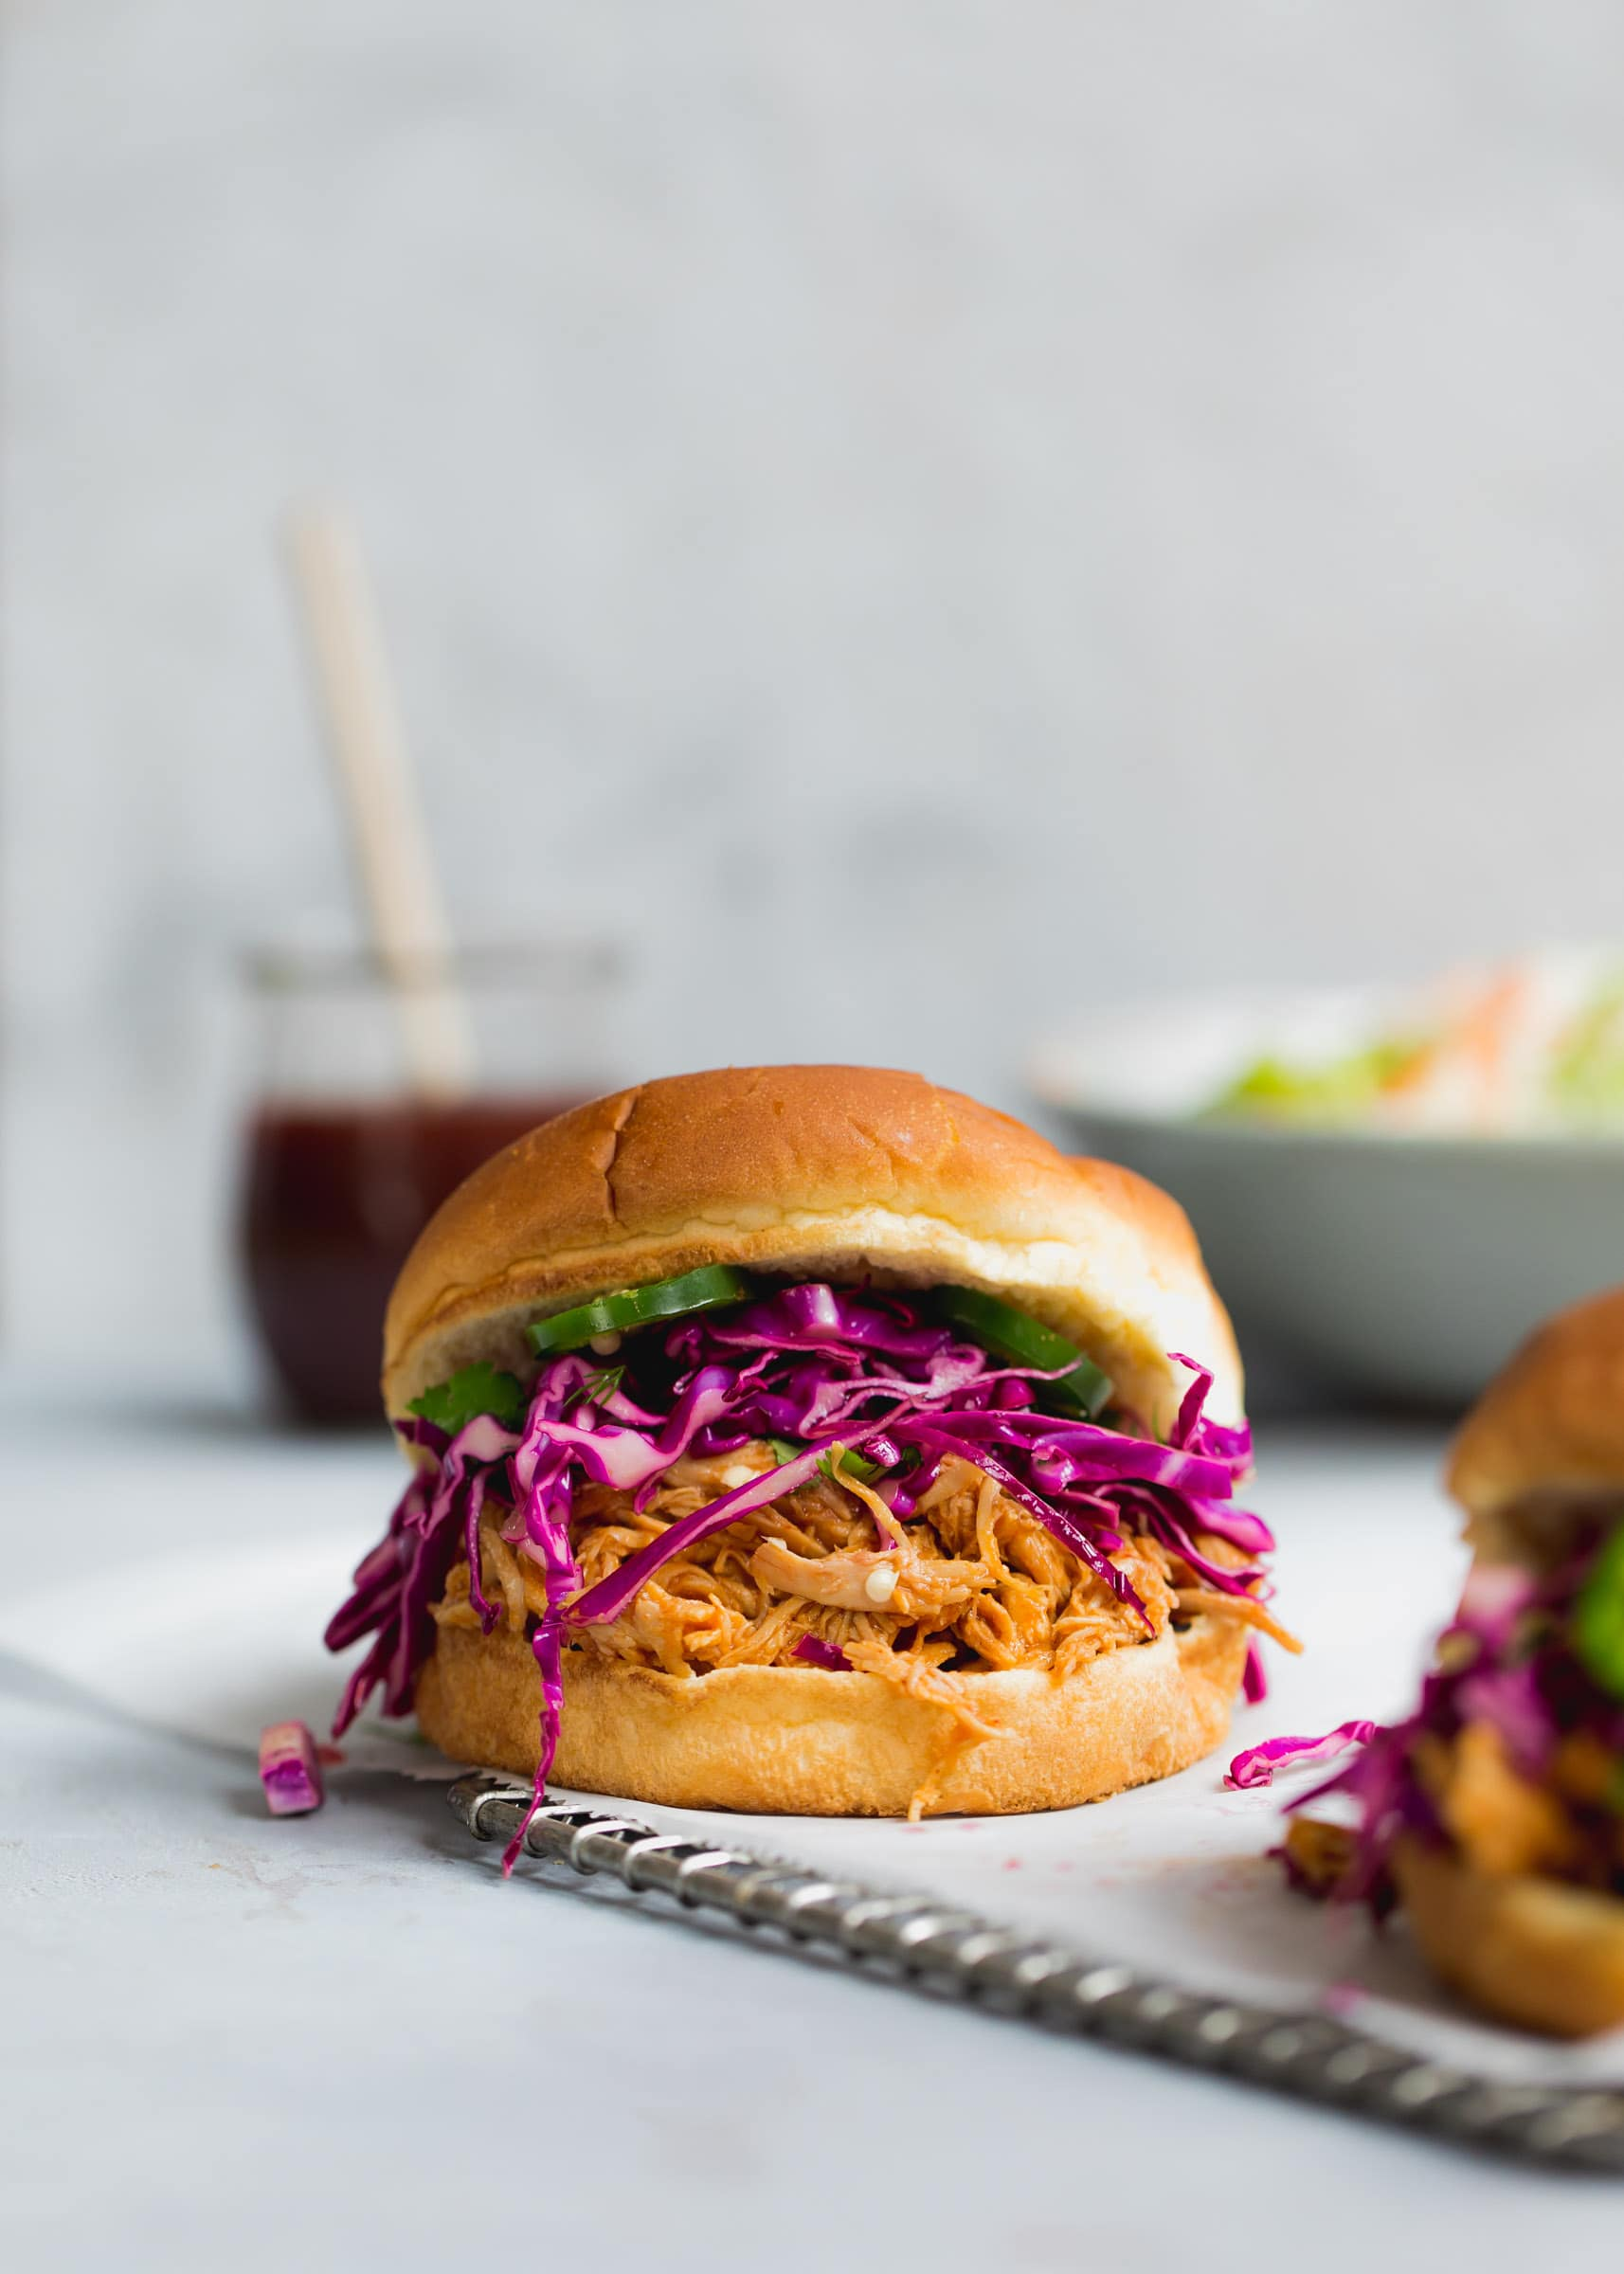 Slow Cooker Hoisin Shredded Chicken Sandwich With Asian ...